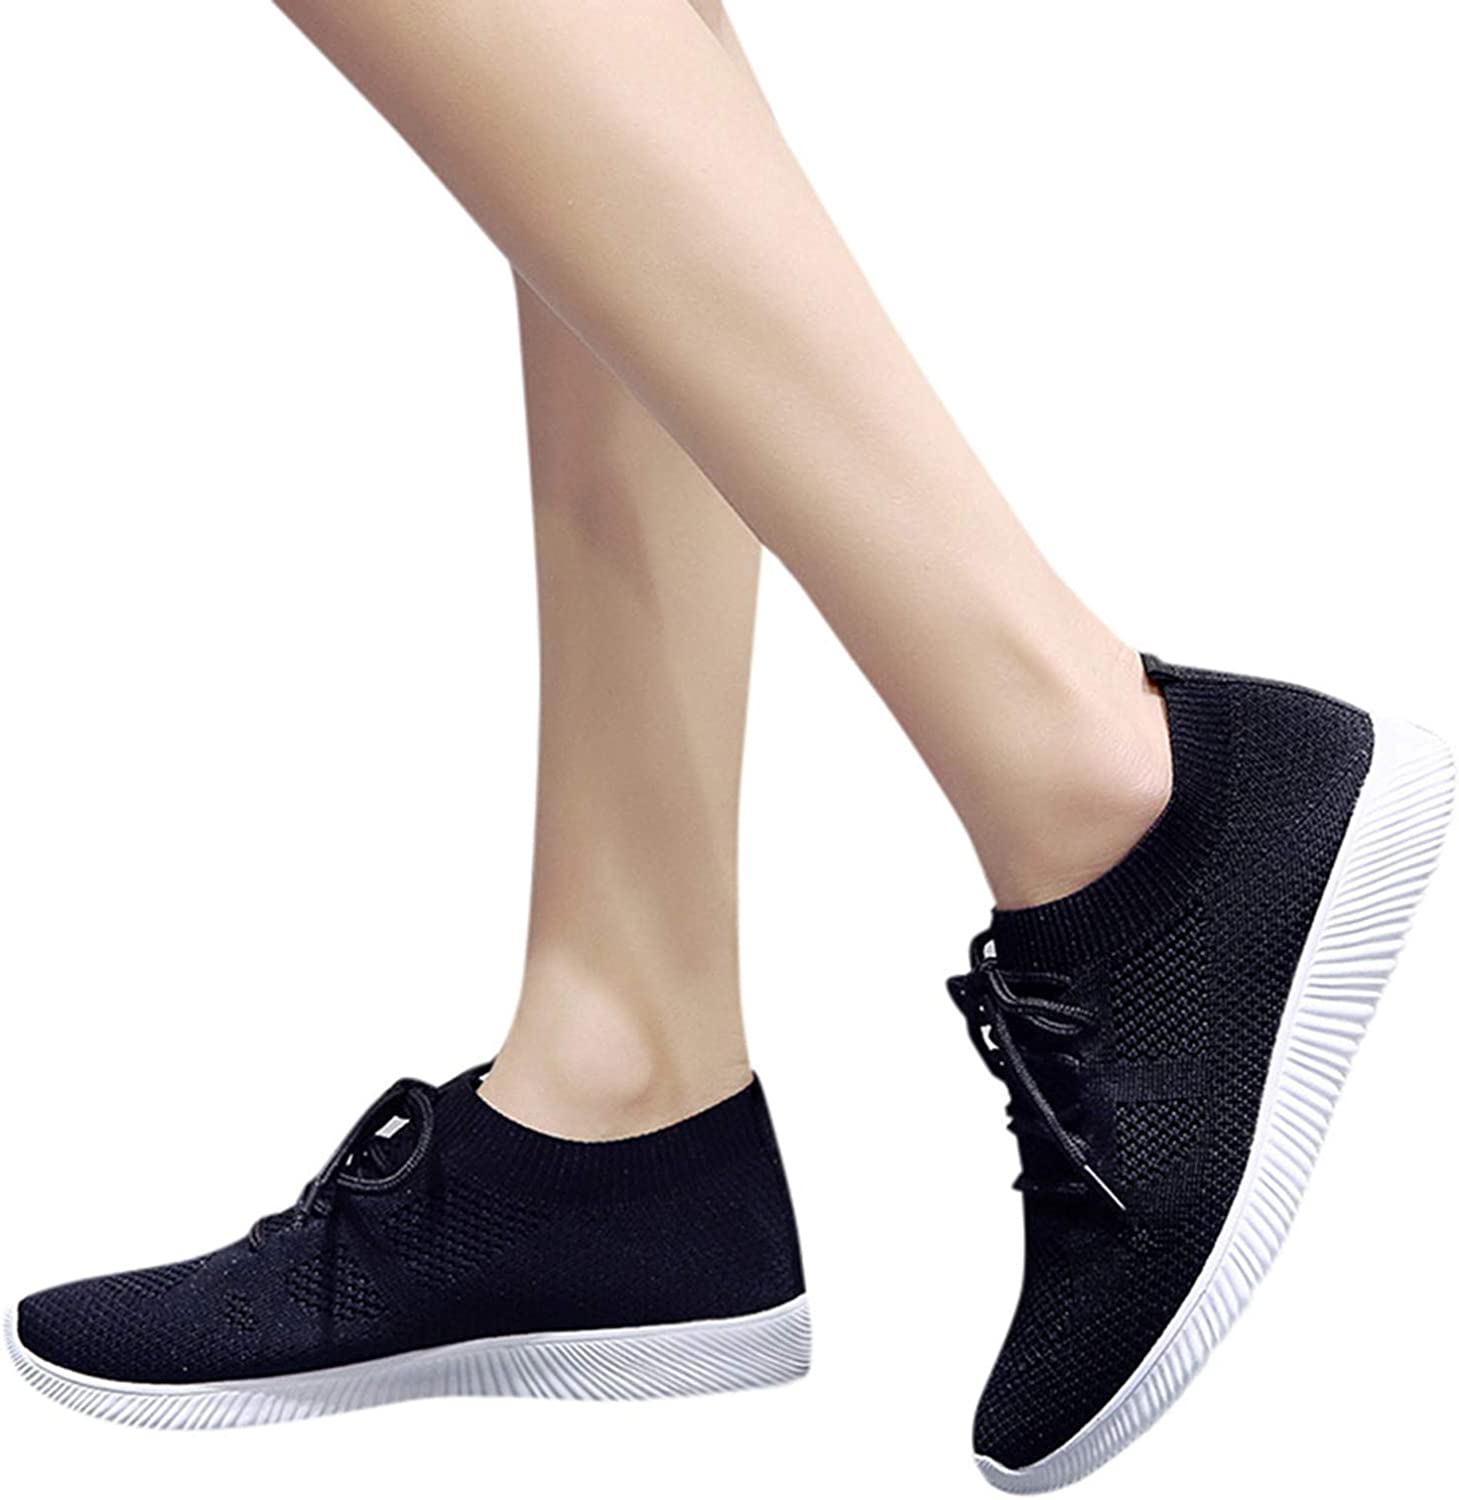 UOCUFY Walking Shoes for Women Sneakers,Slip On Platform Shoes Low Tops Lightweight Walking Shoes Comfort Ladies Leisure Shoes